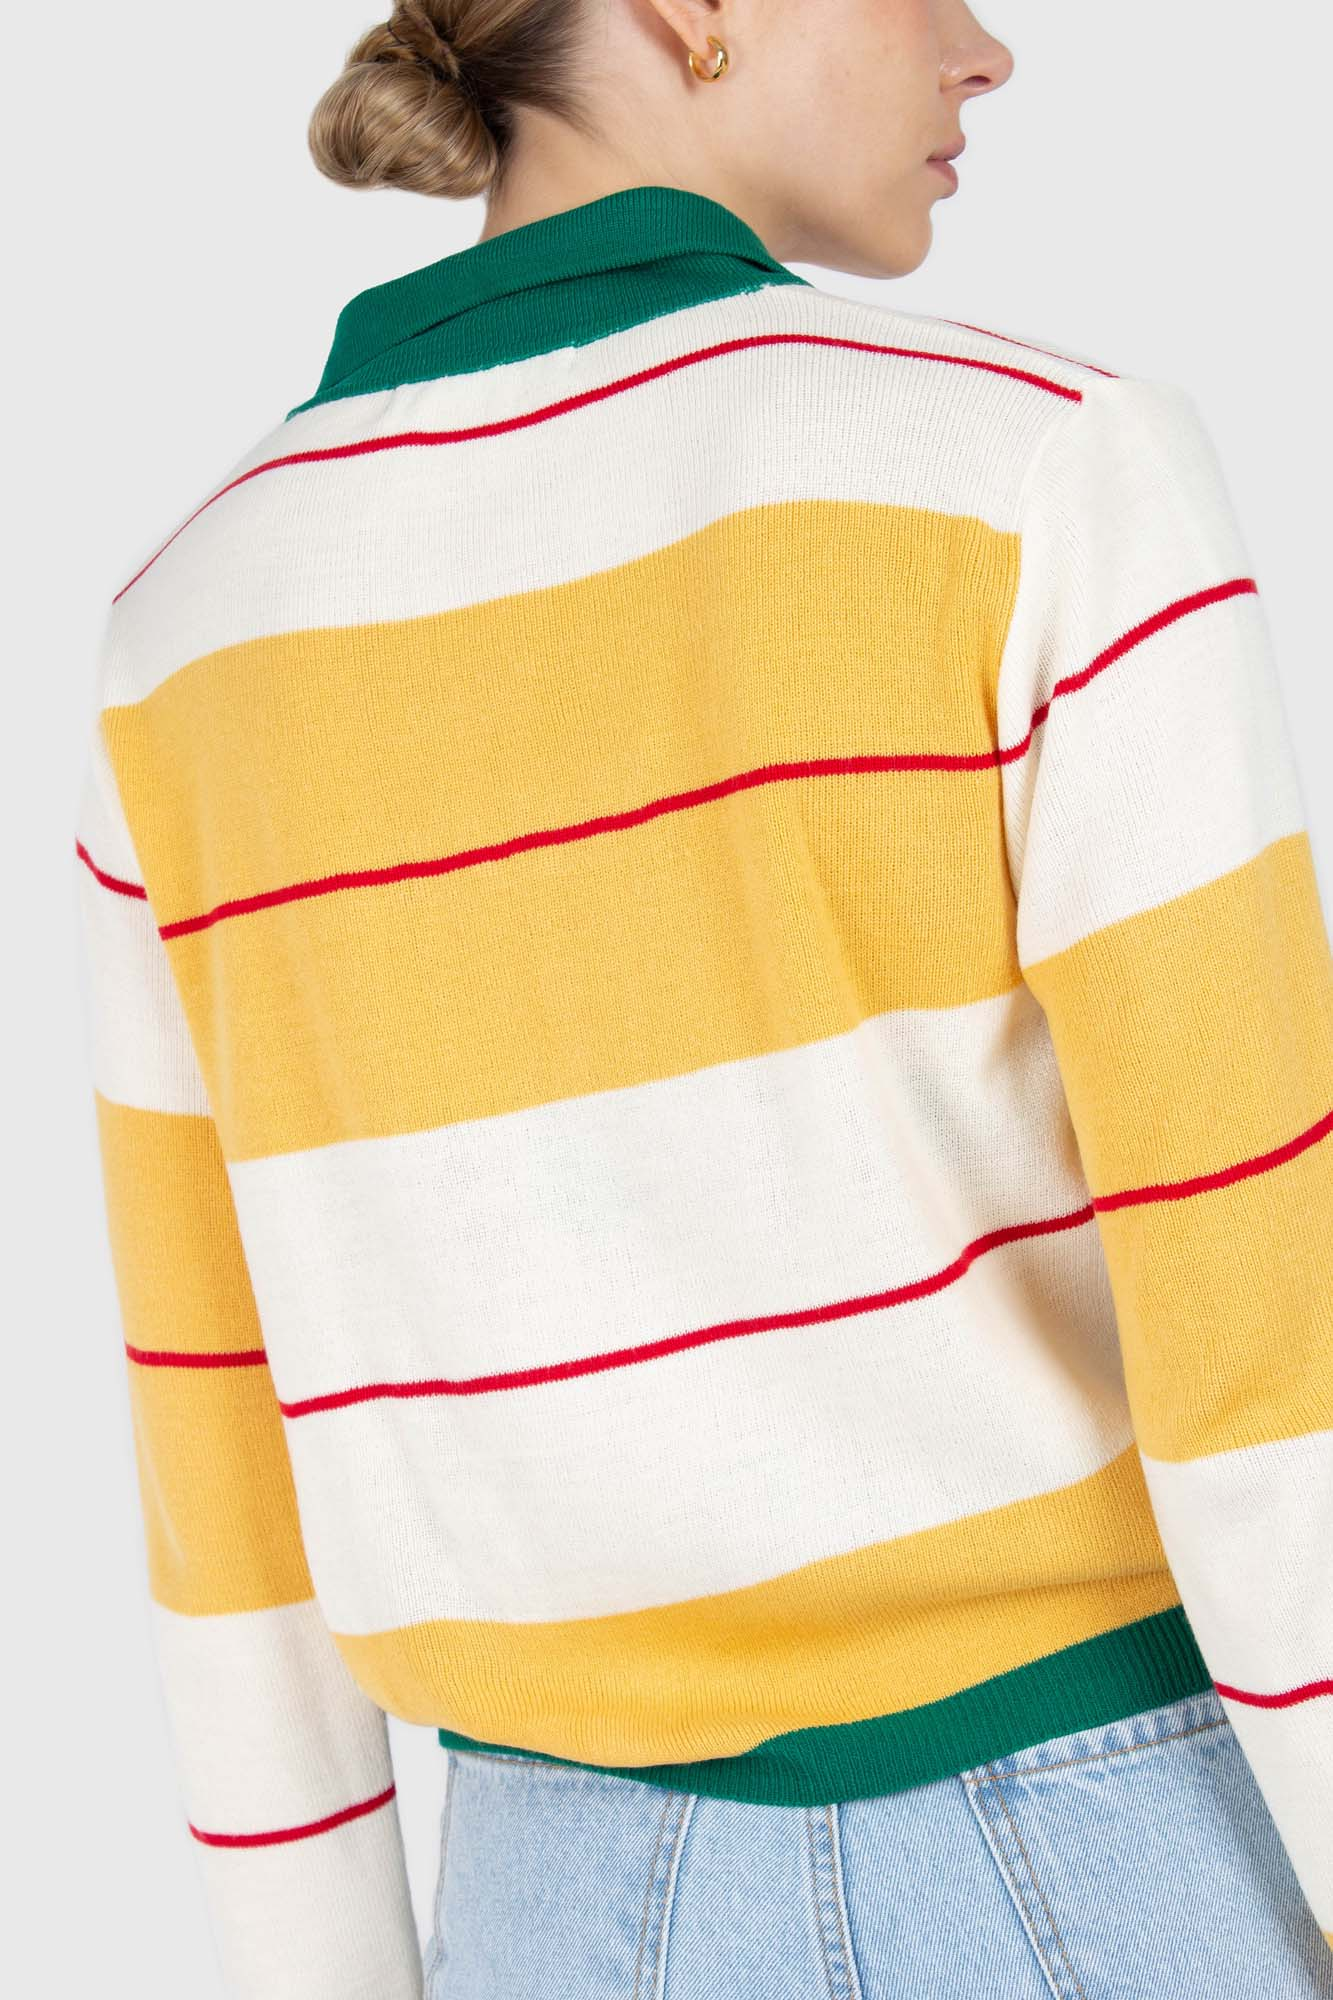 Green and yellow thick multistriped polo knit top3